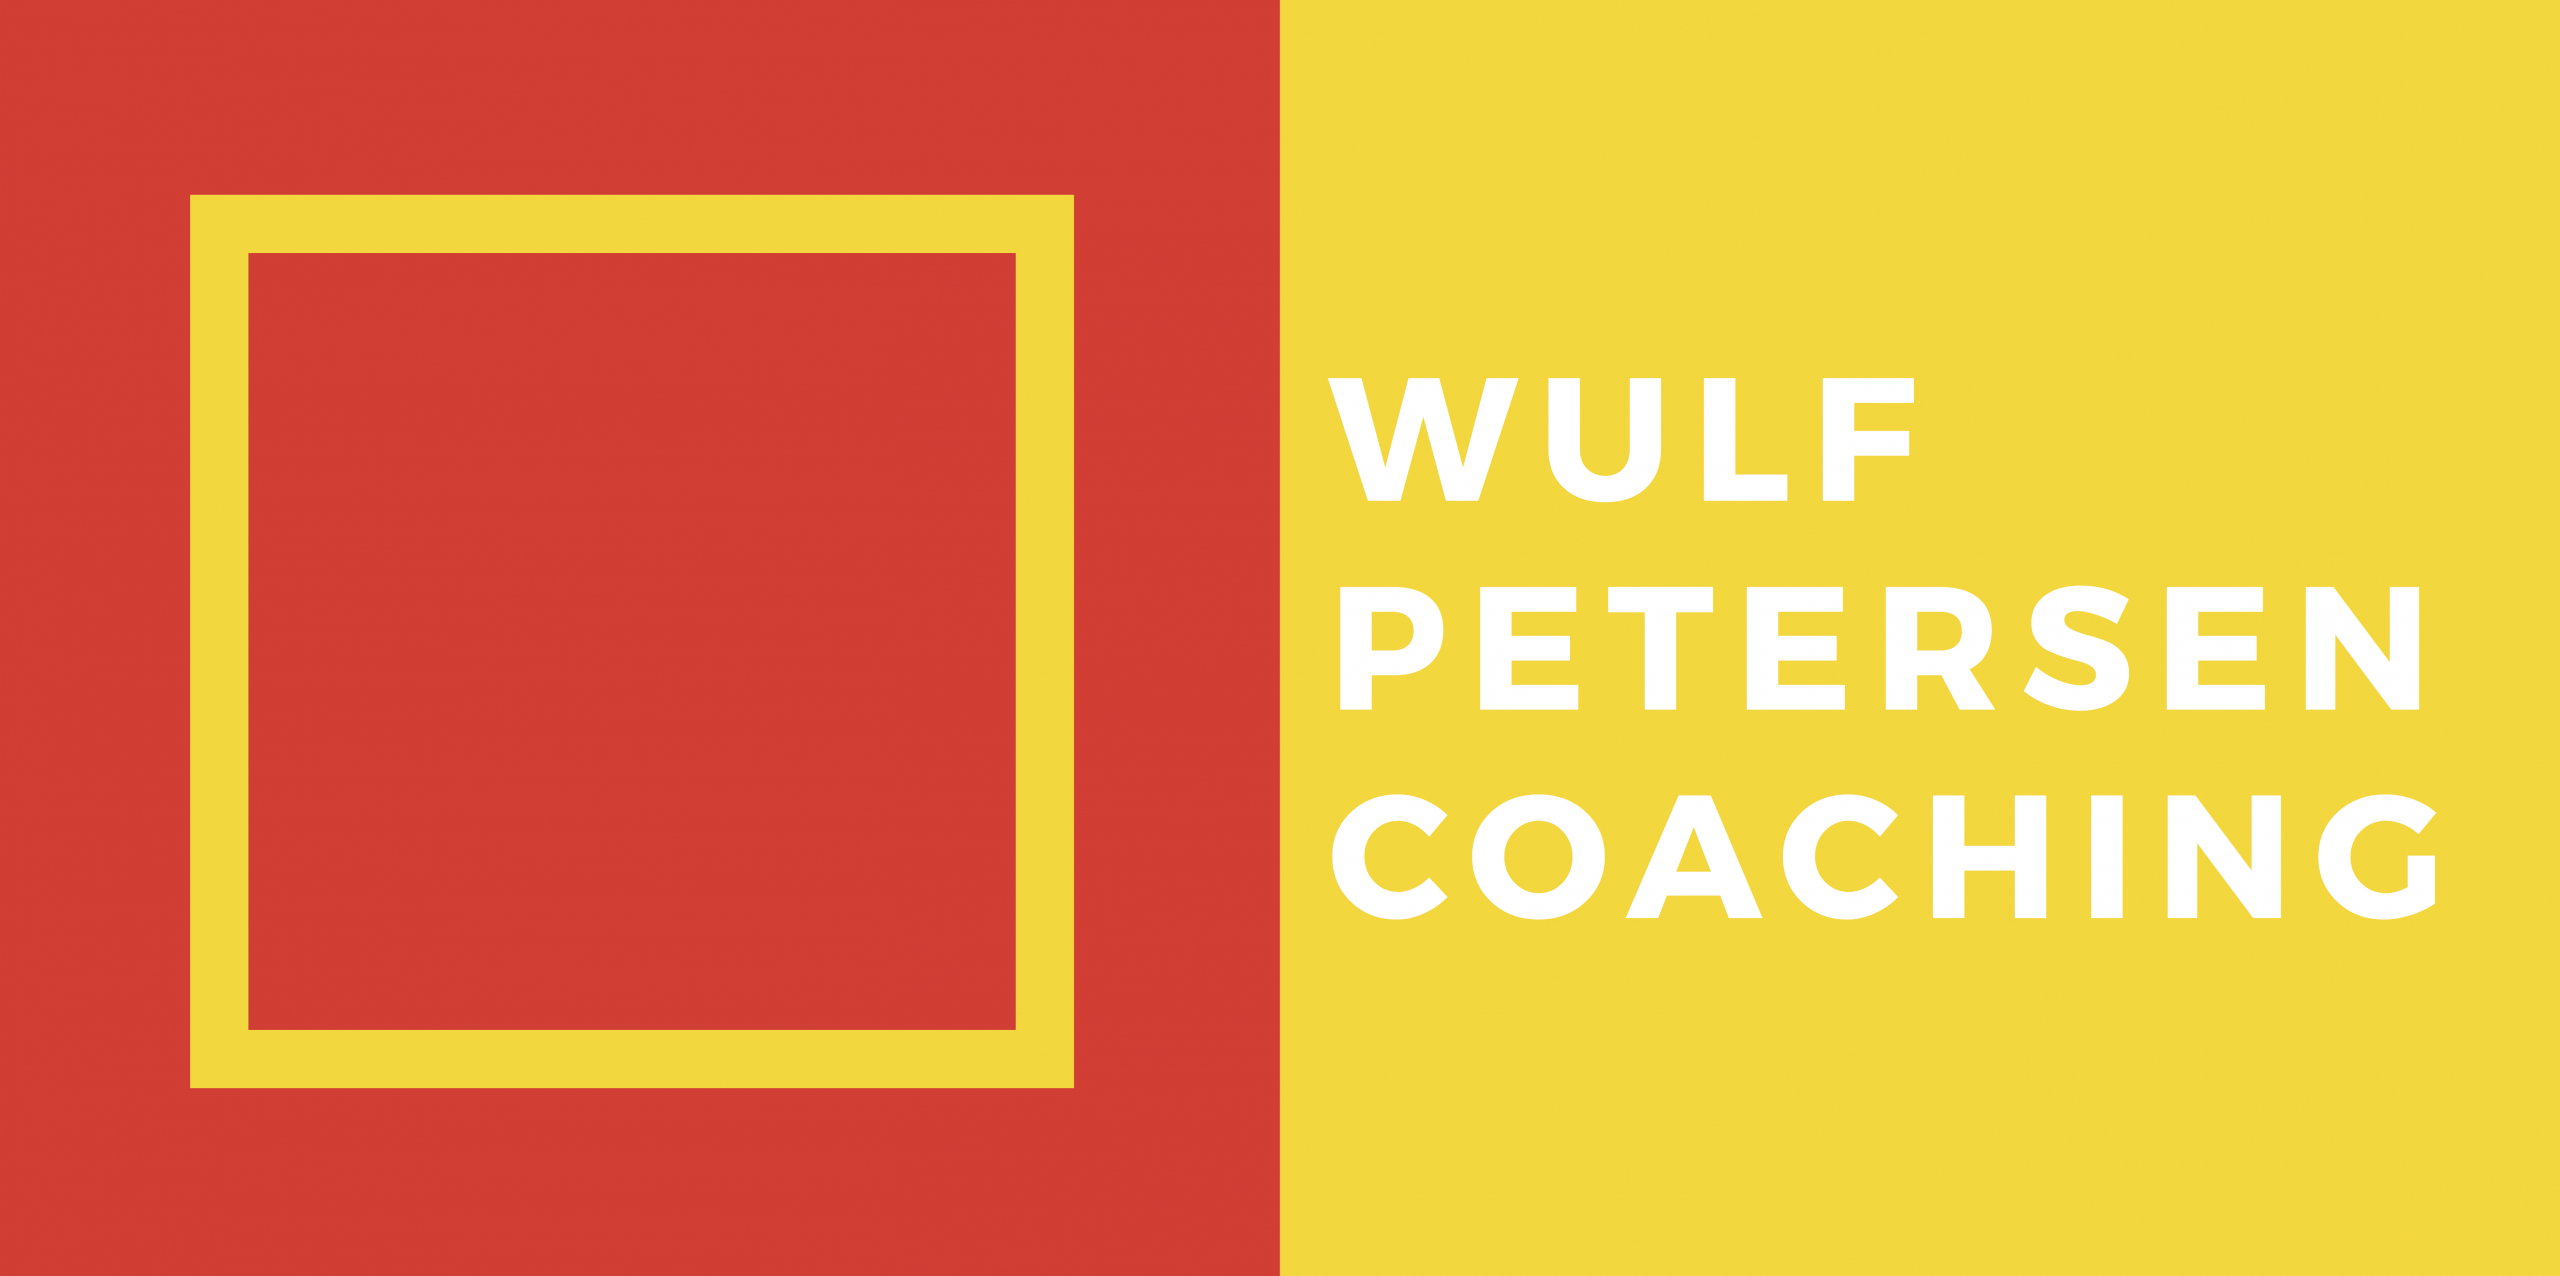 Wulf Petersen Coaching